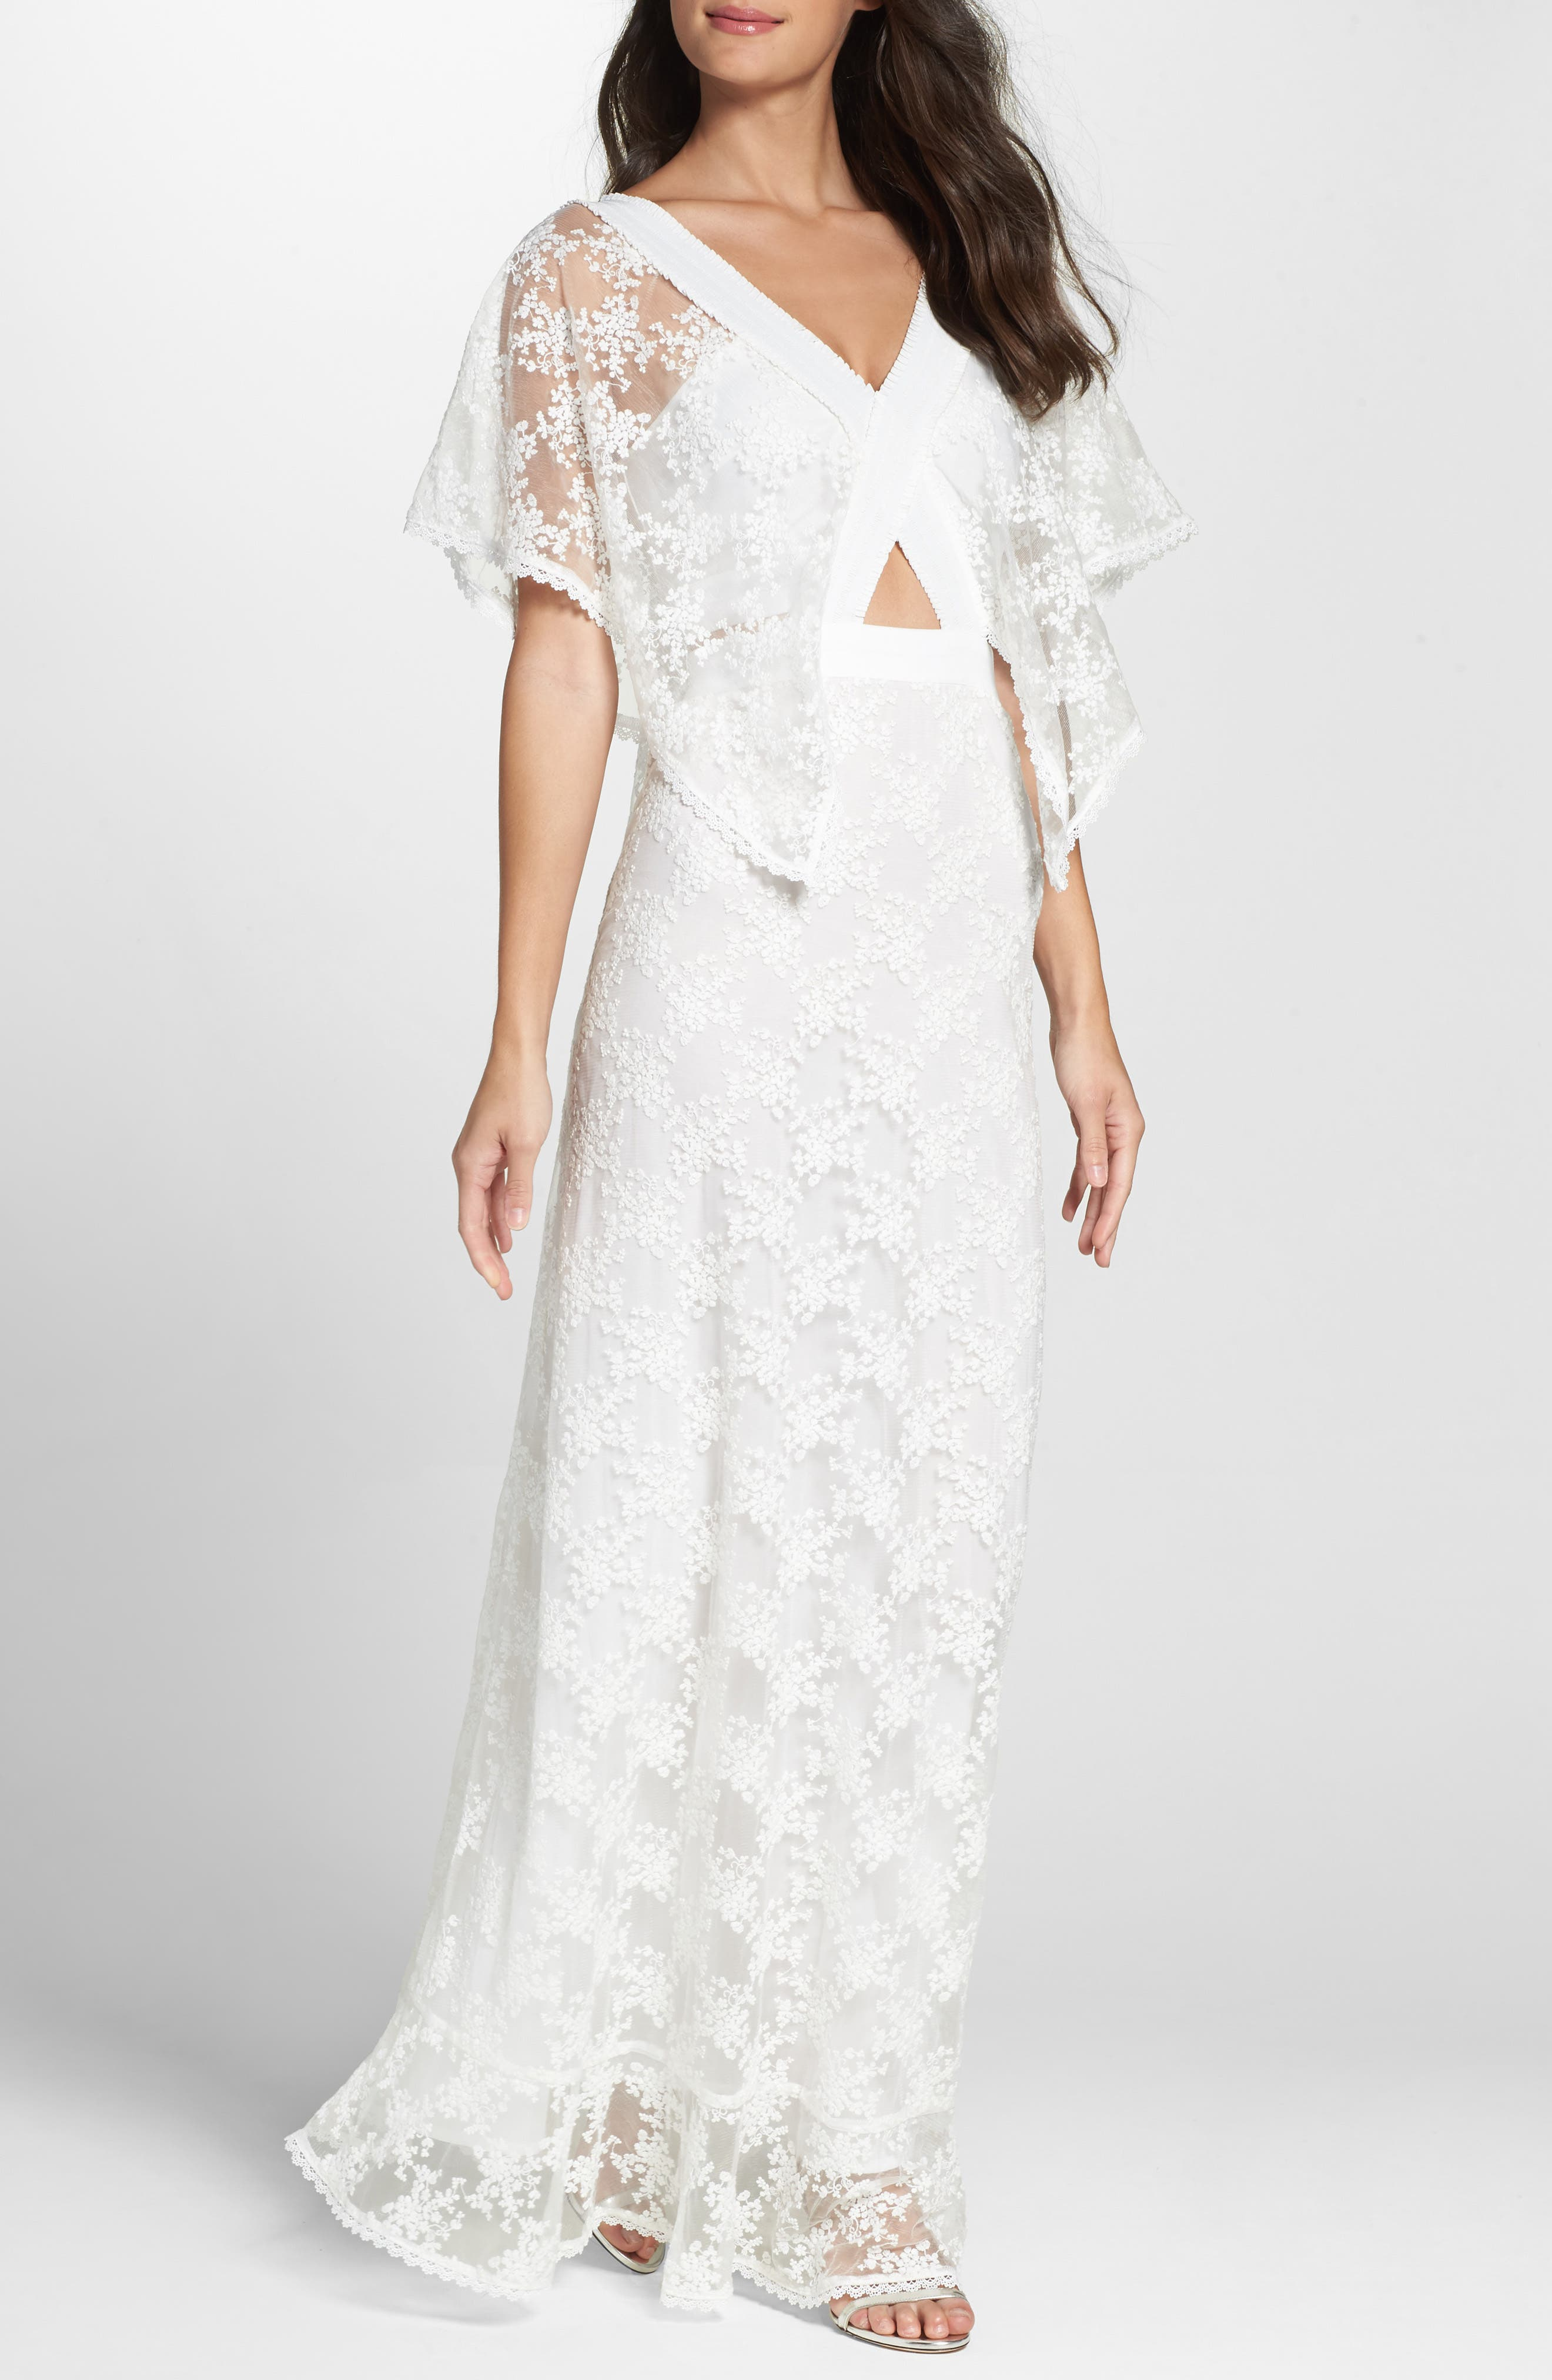 August Handkerchief Sleeve Embroidered Long Dress,                             Main thumbnail 1, color,                             Ivory